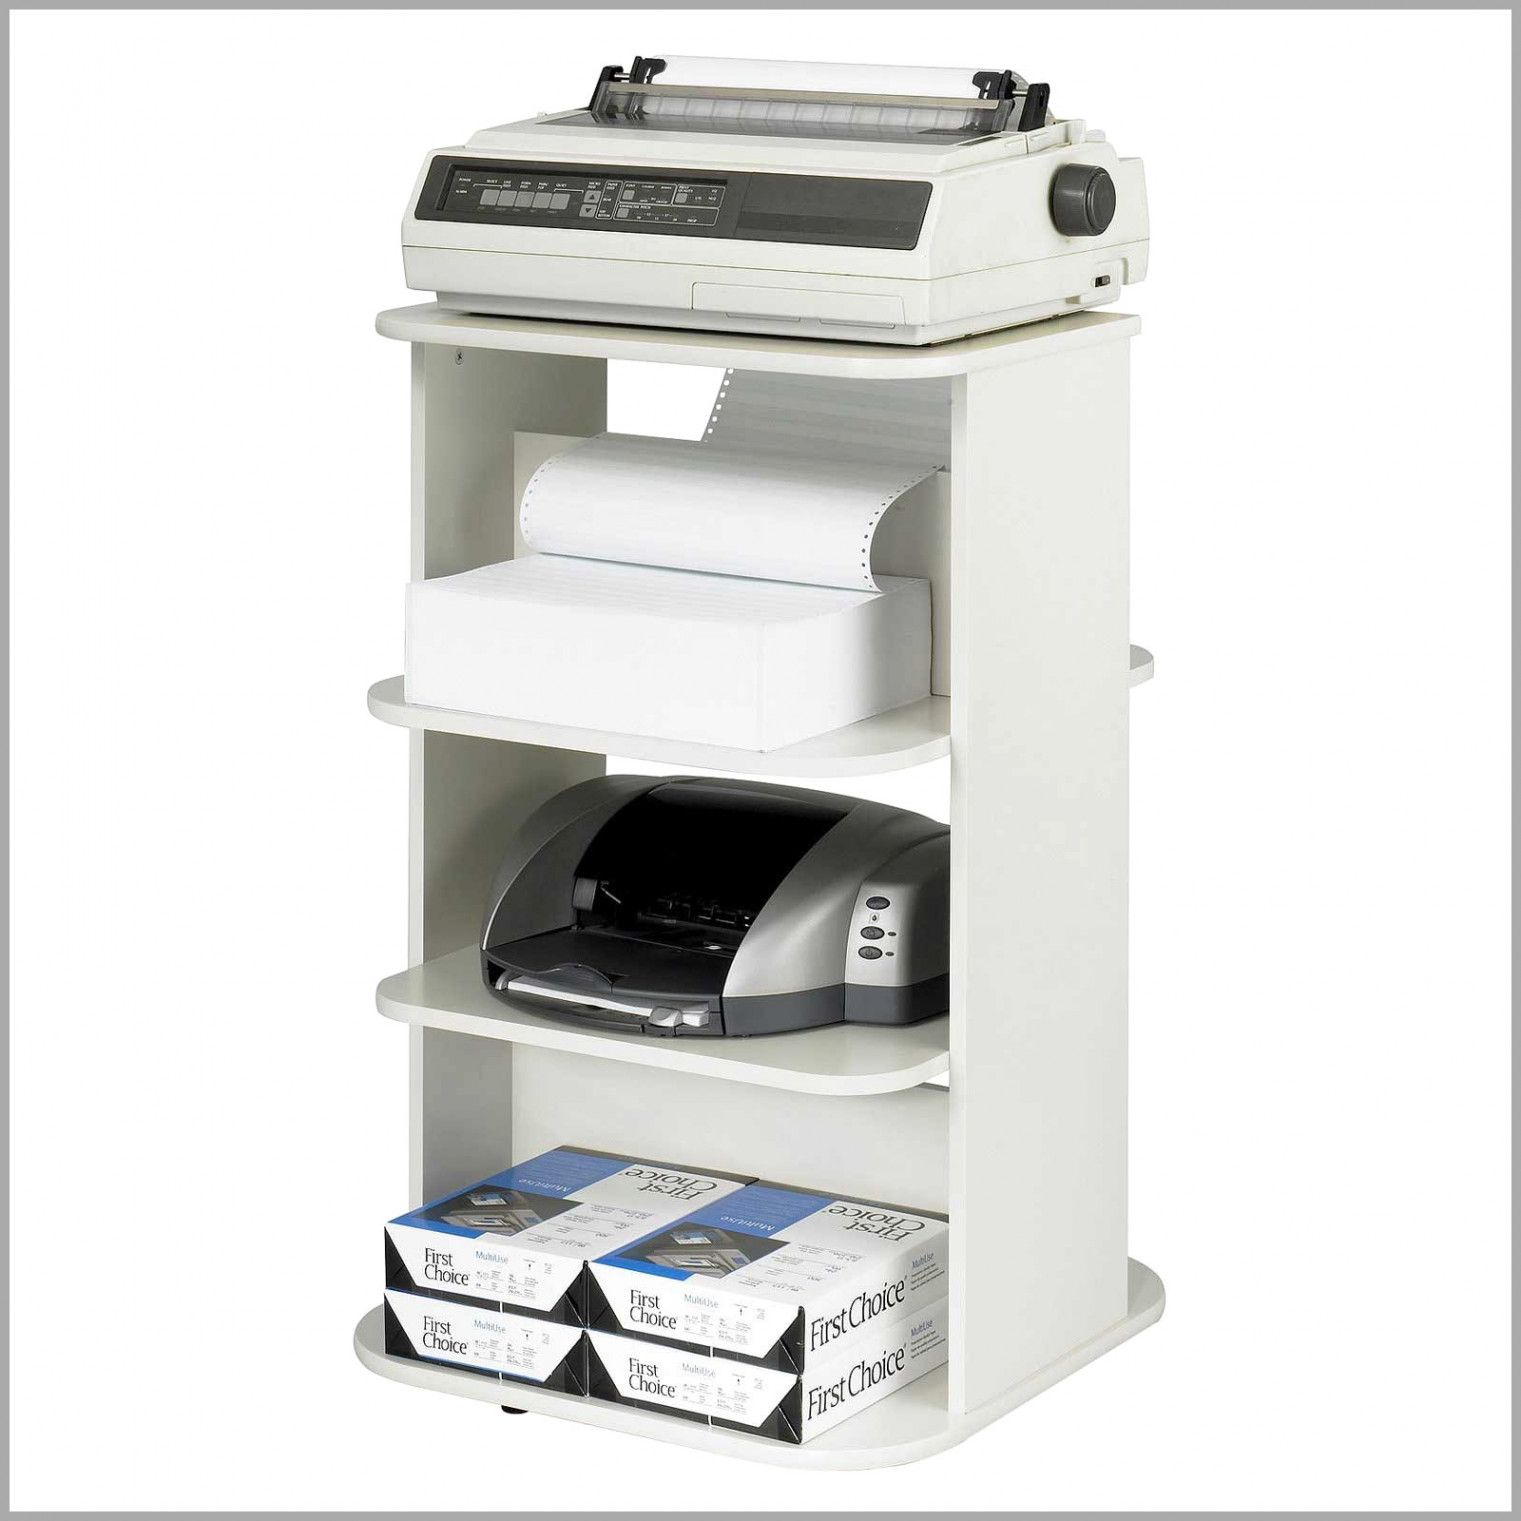 70 Office Printer Table Large Home Office Furniture Check More At Http Adidasjrcamp Com Office Printer Table Printer Stand Ikea Printer Stand Ikea